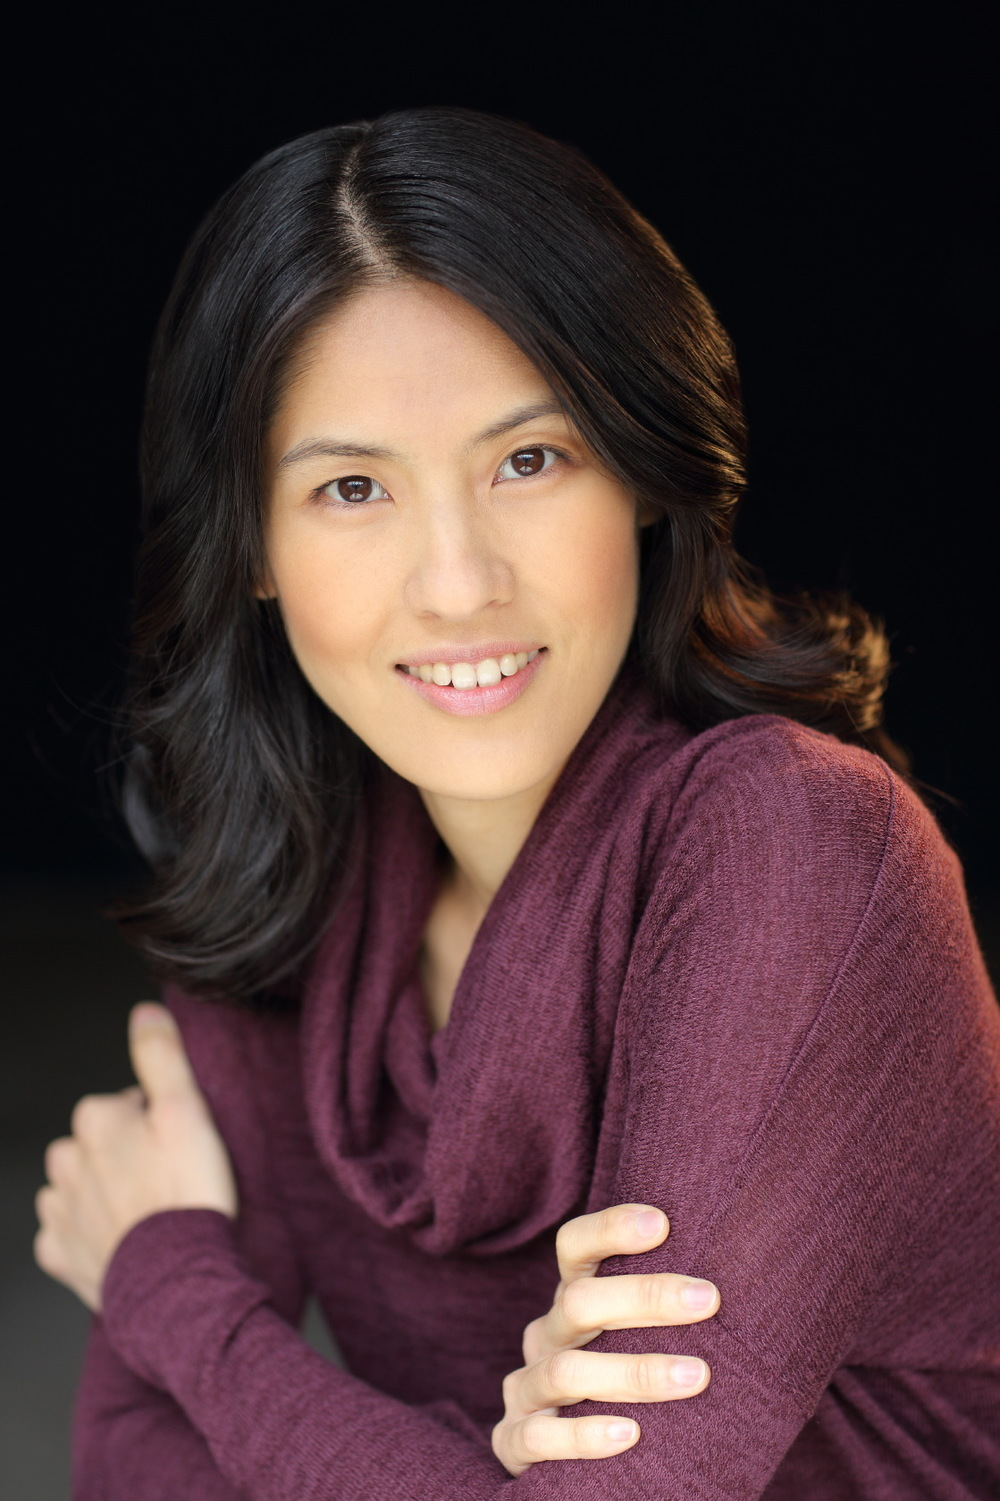 Benjamin Kwan Photography HEADSHOTS 98.JPG